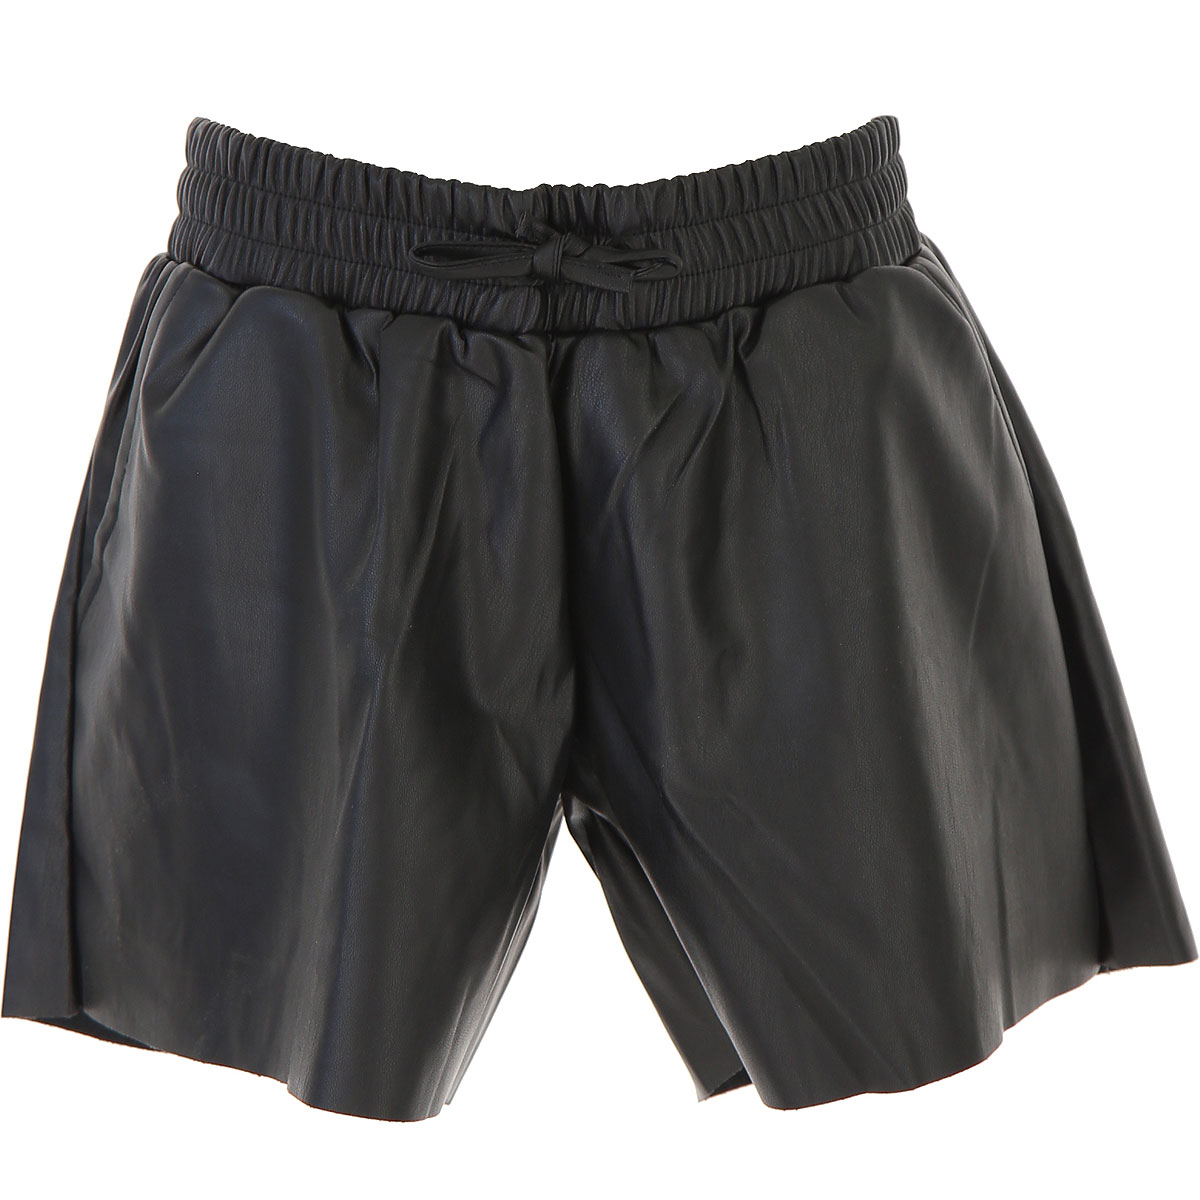 Zadig & Voltaire Kids Shorts for Girls Black SE - GOOFASH